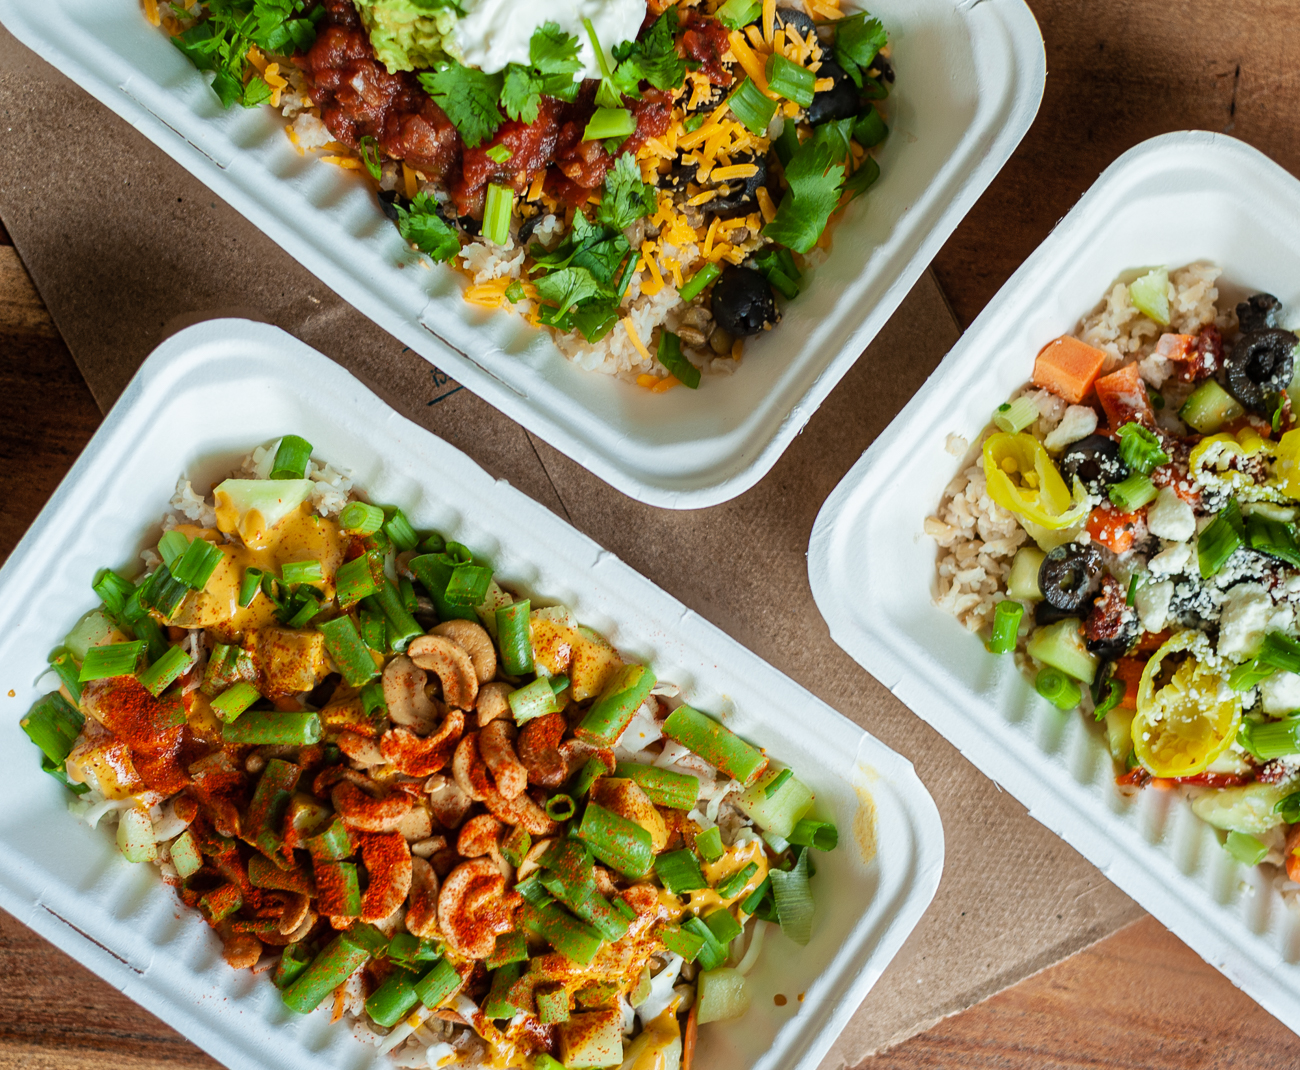 <p>Fiesta Bowl, The Mediterranean Bowl, and the Spicy Thai Bowl / Image: Kellie Coleman // Published: 12.27.20</p>